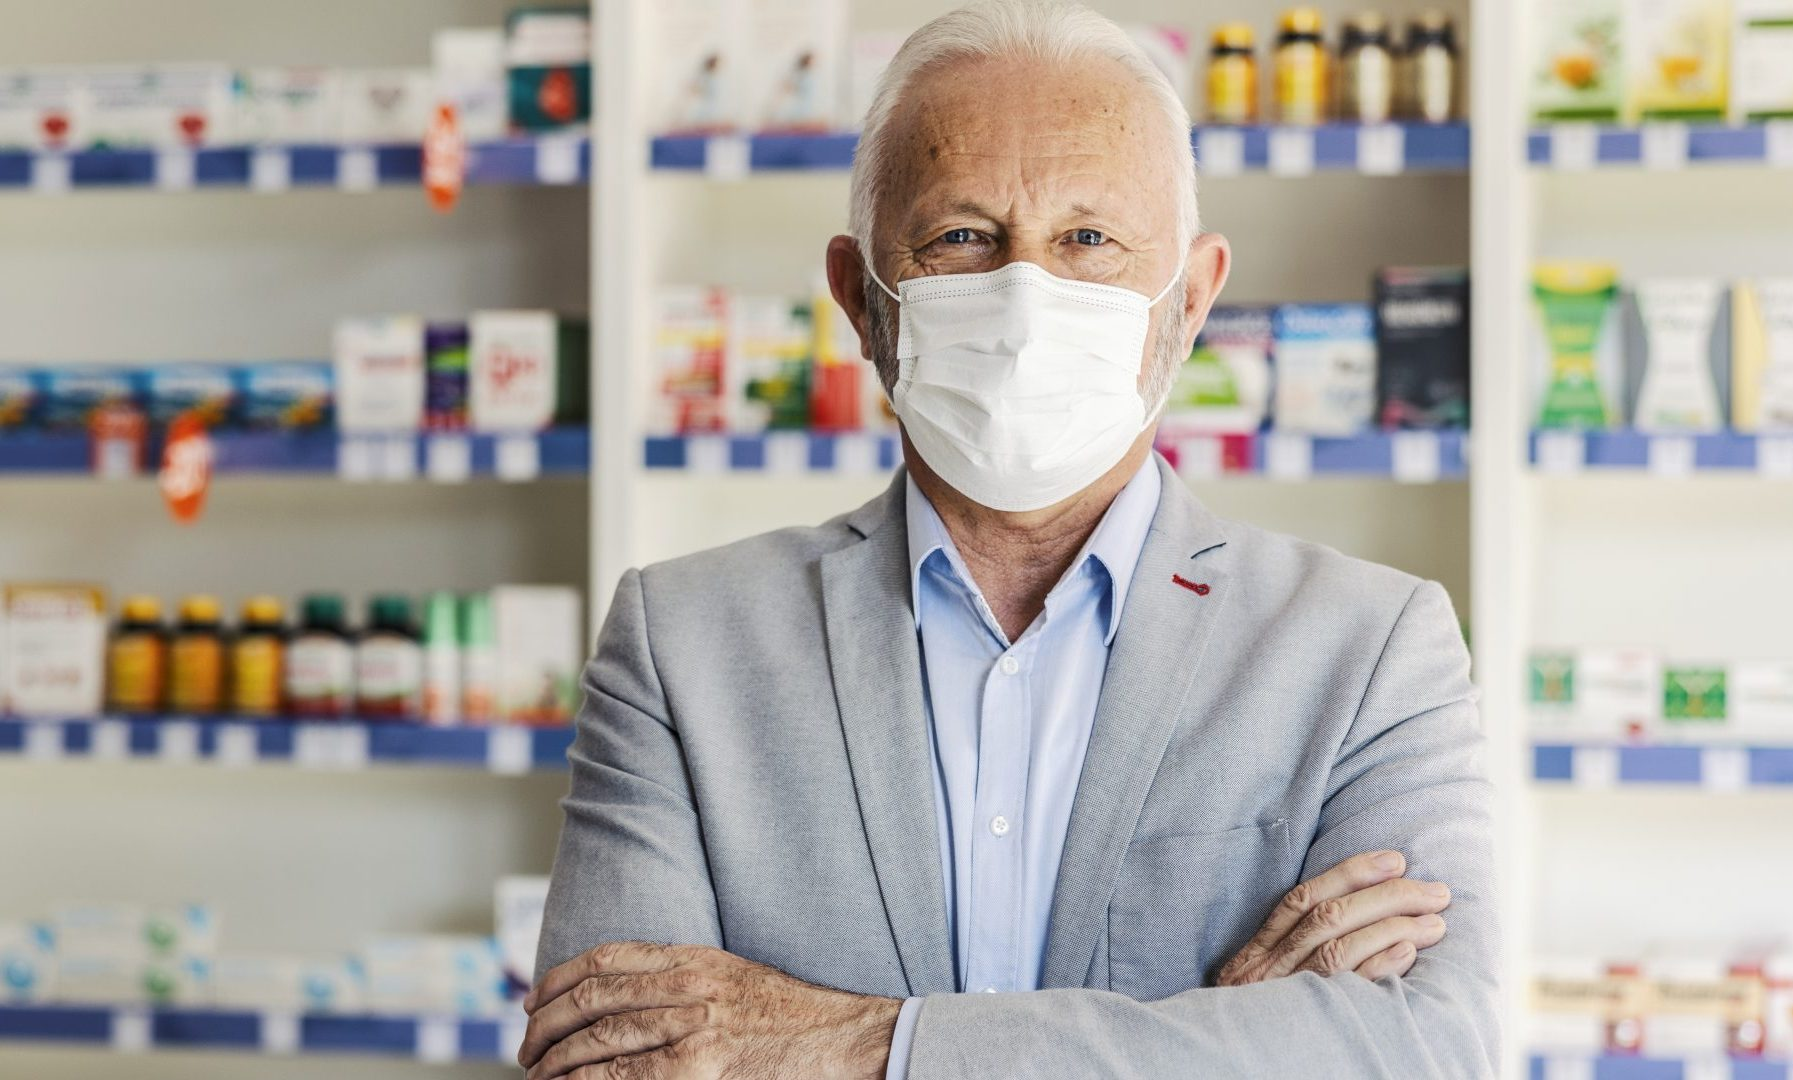 Senior pharmacist with his arms crossed is standing in a pharmacy, wearing a face mask.